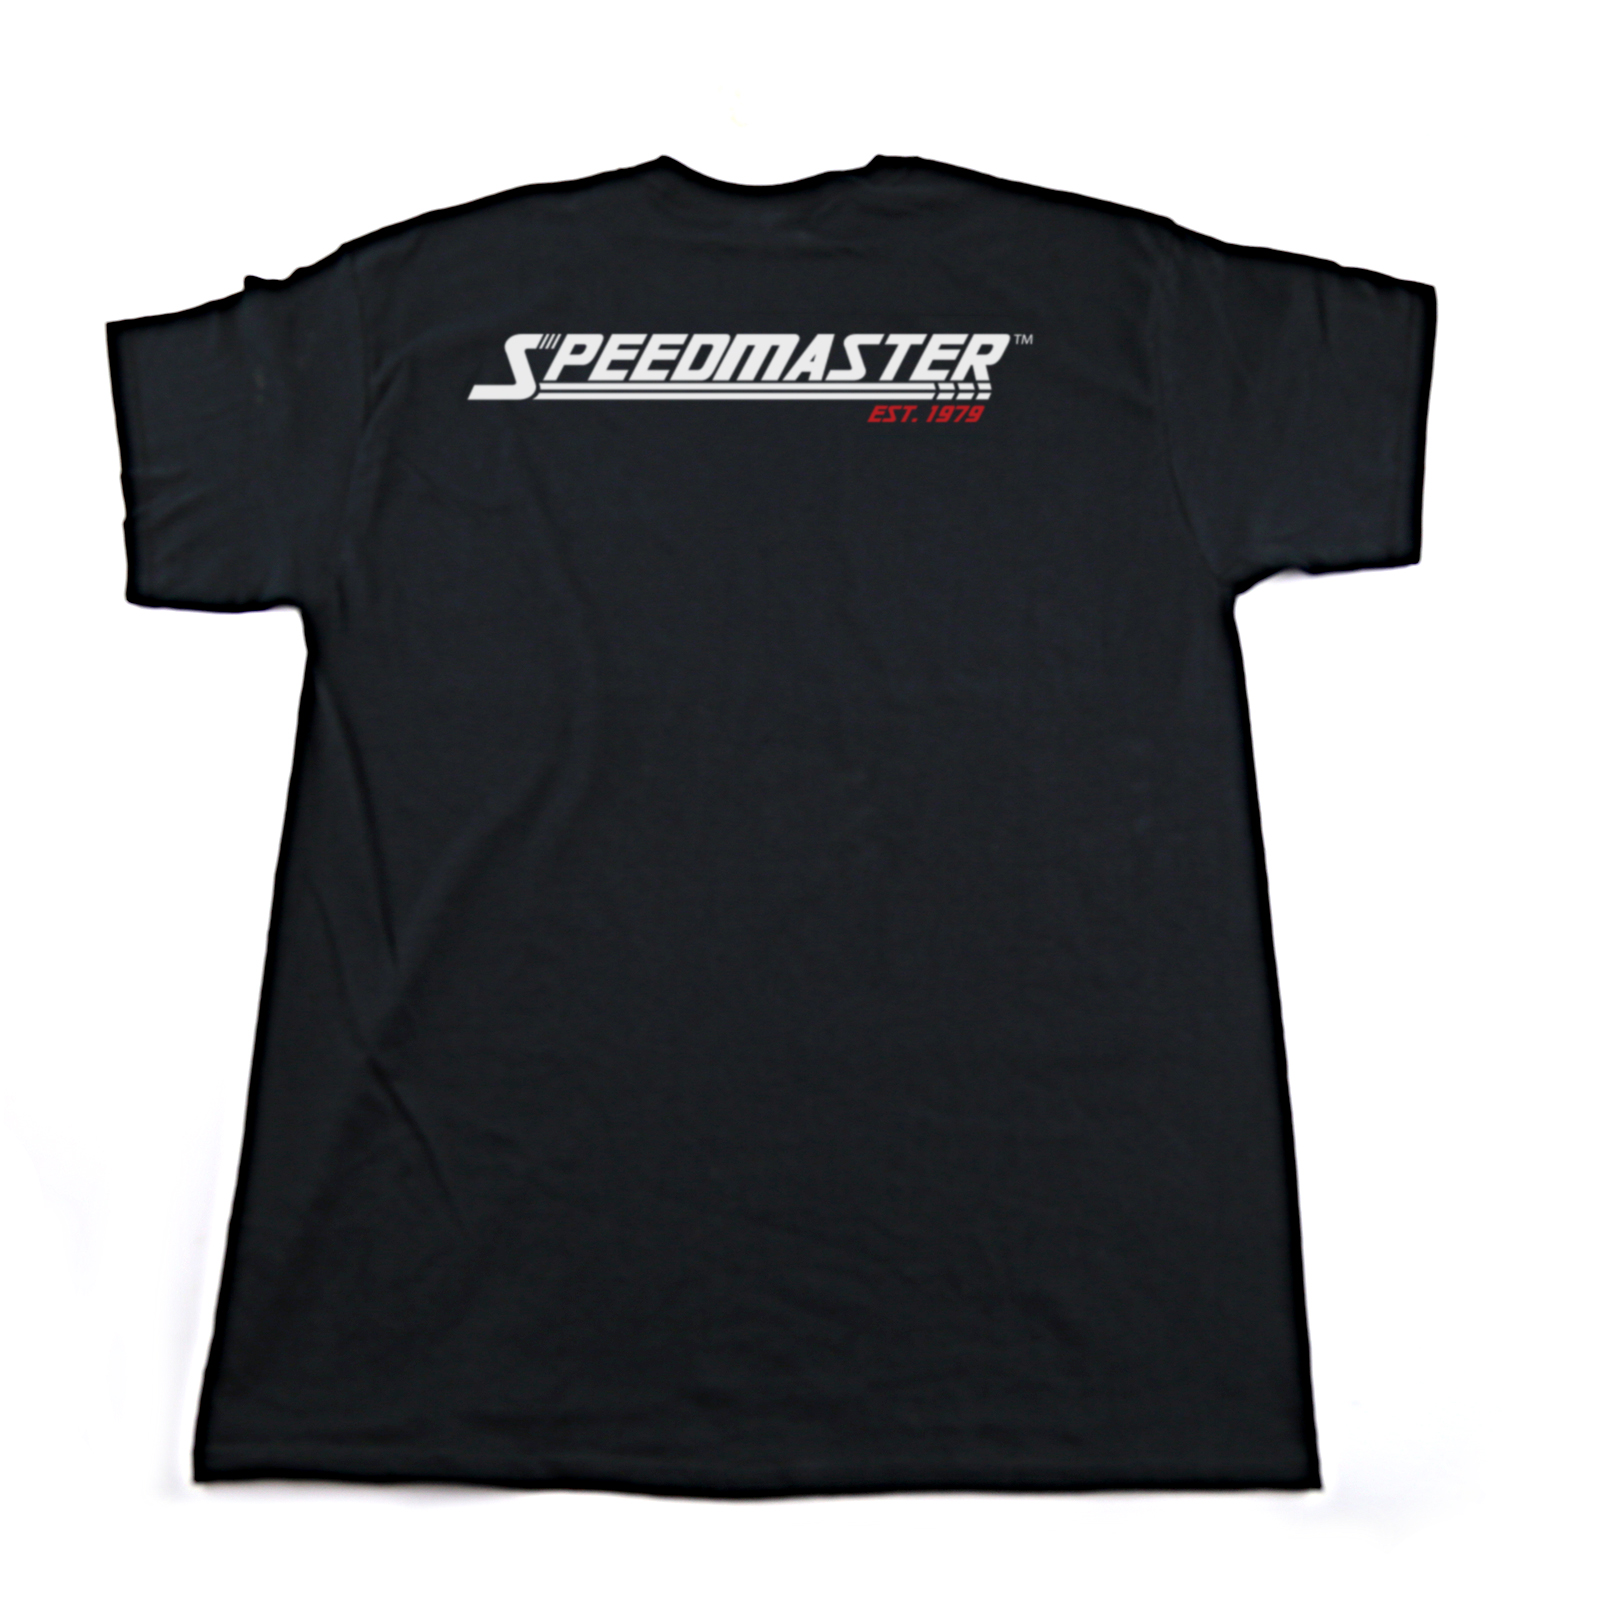 Speedmaster Black T-Shirt - X-Large XL